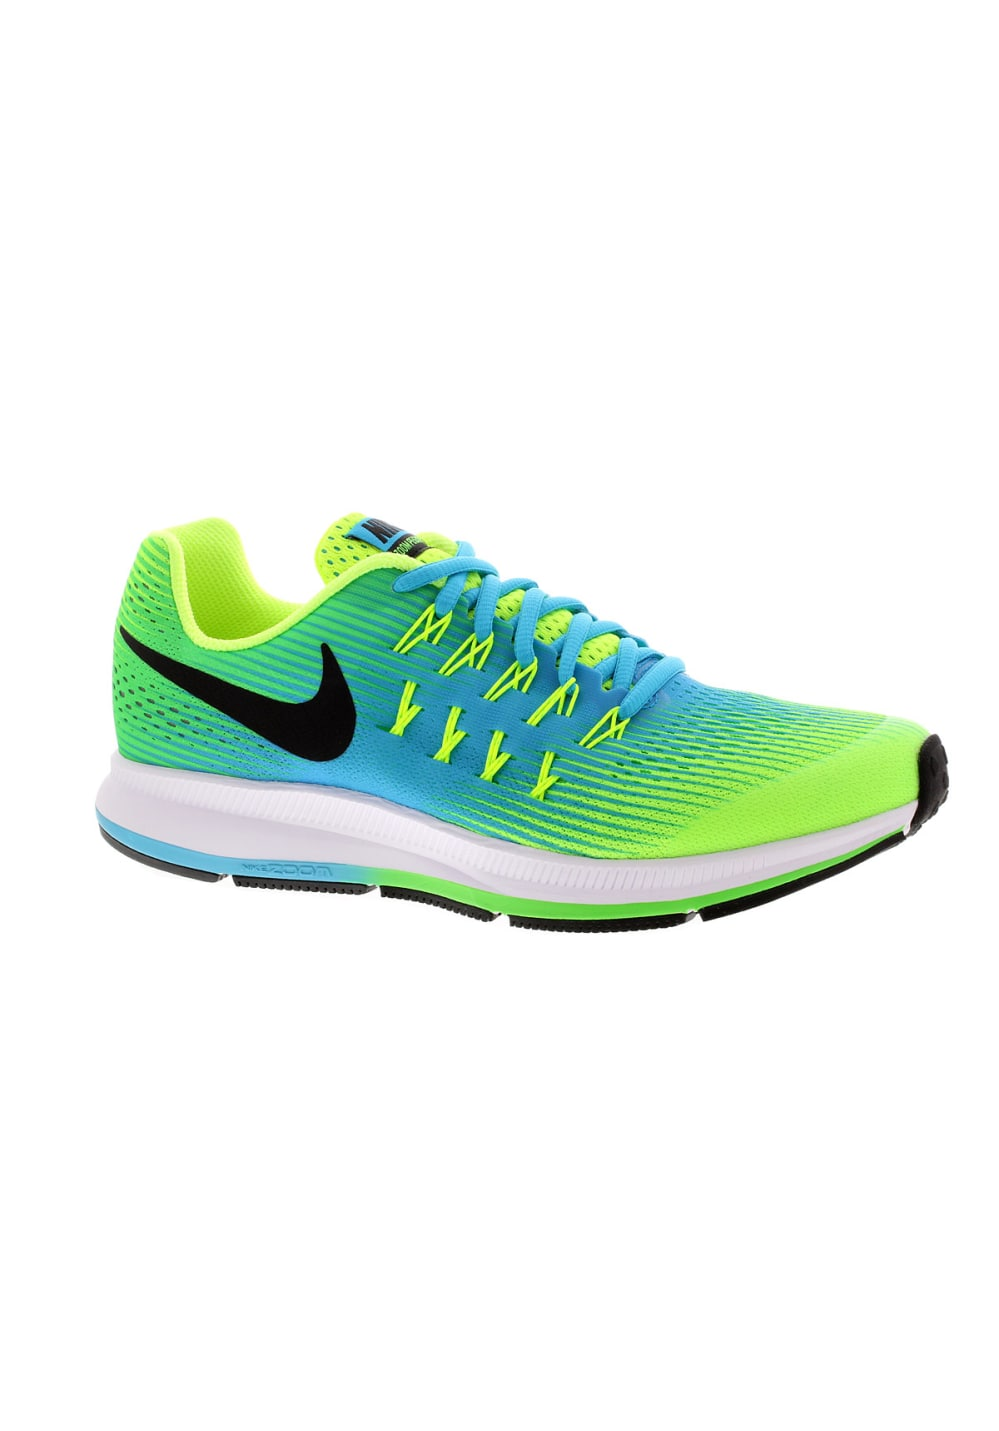 the latest aa8ad d4931 Nike Air Zoom Pegasus 33 GS Boys - Running shoes - Blue